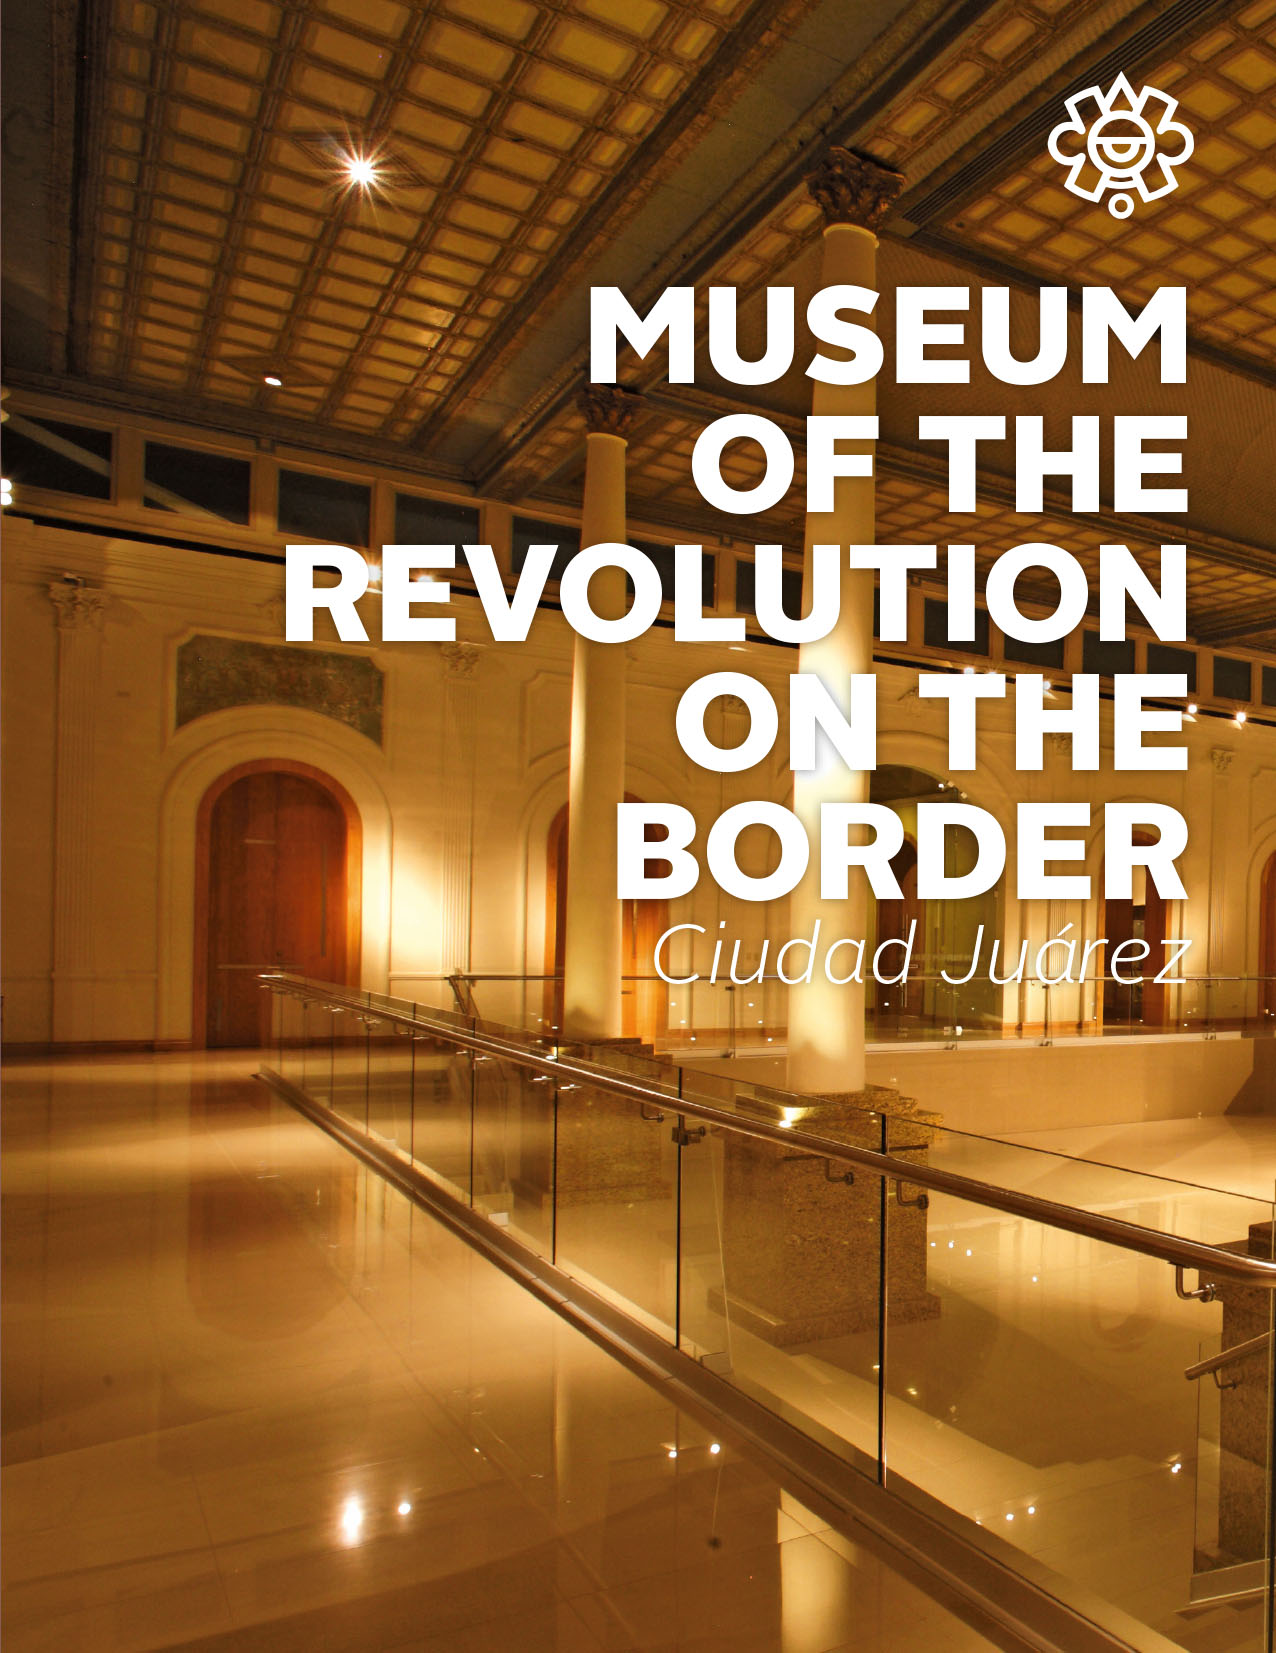 Museum of the Revolution on the Border